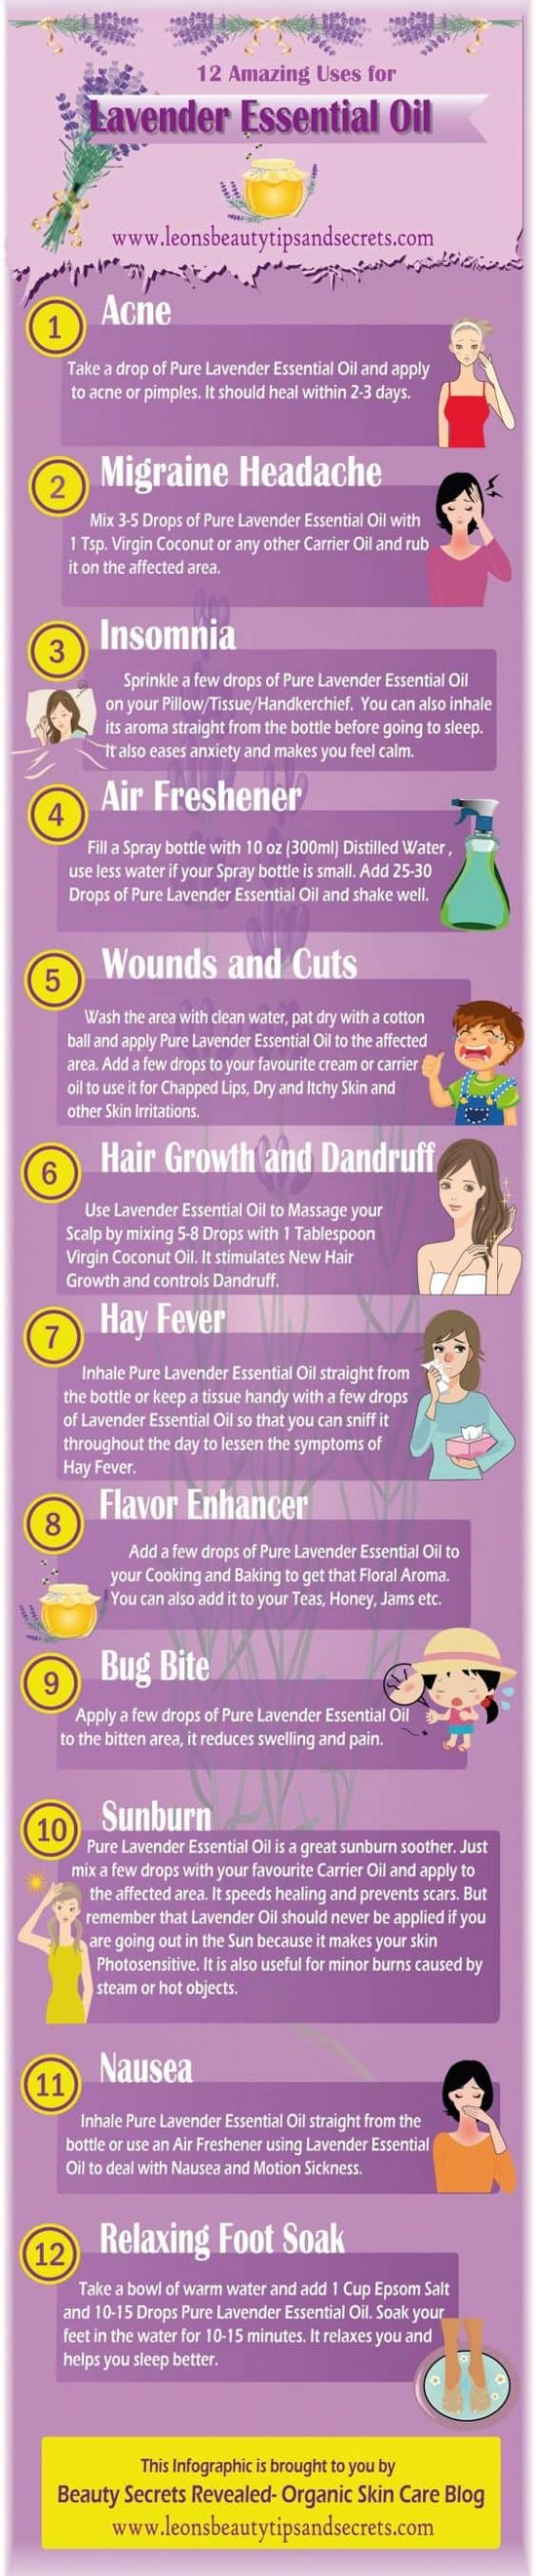 12 Amazing Uses for Lavender